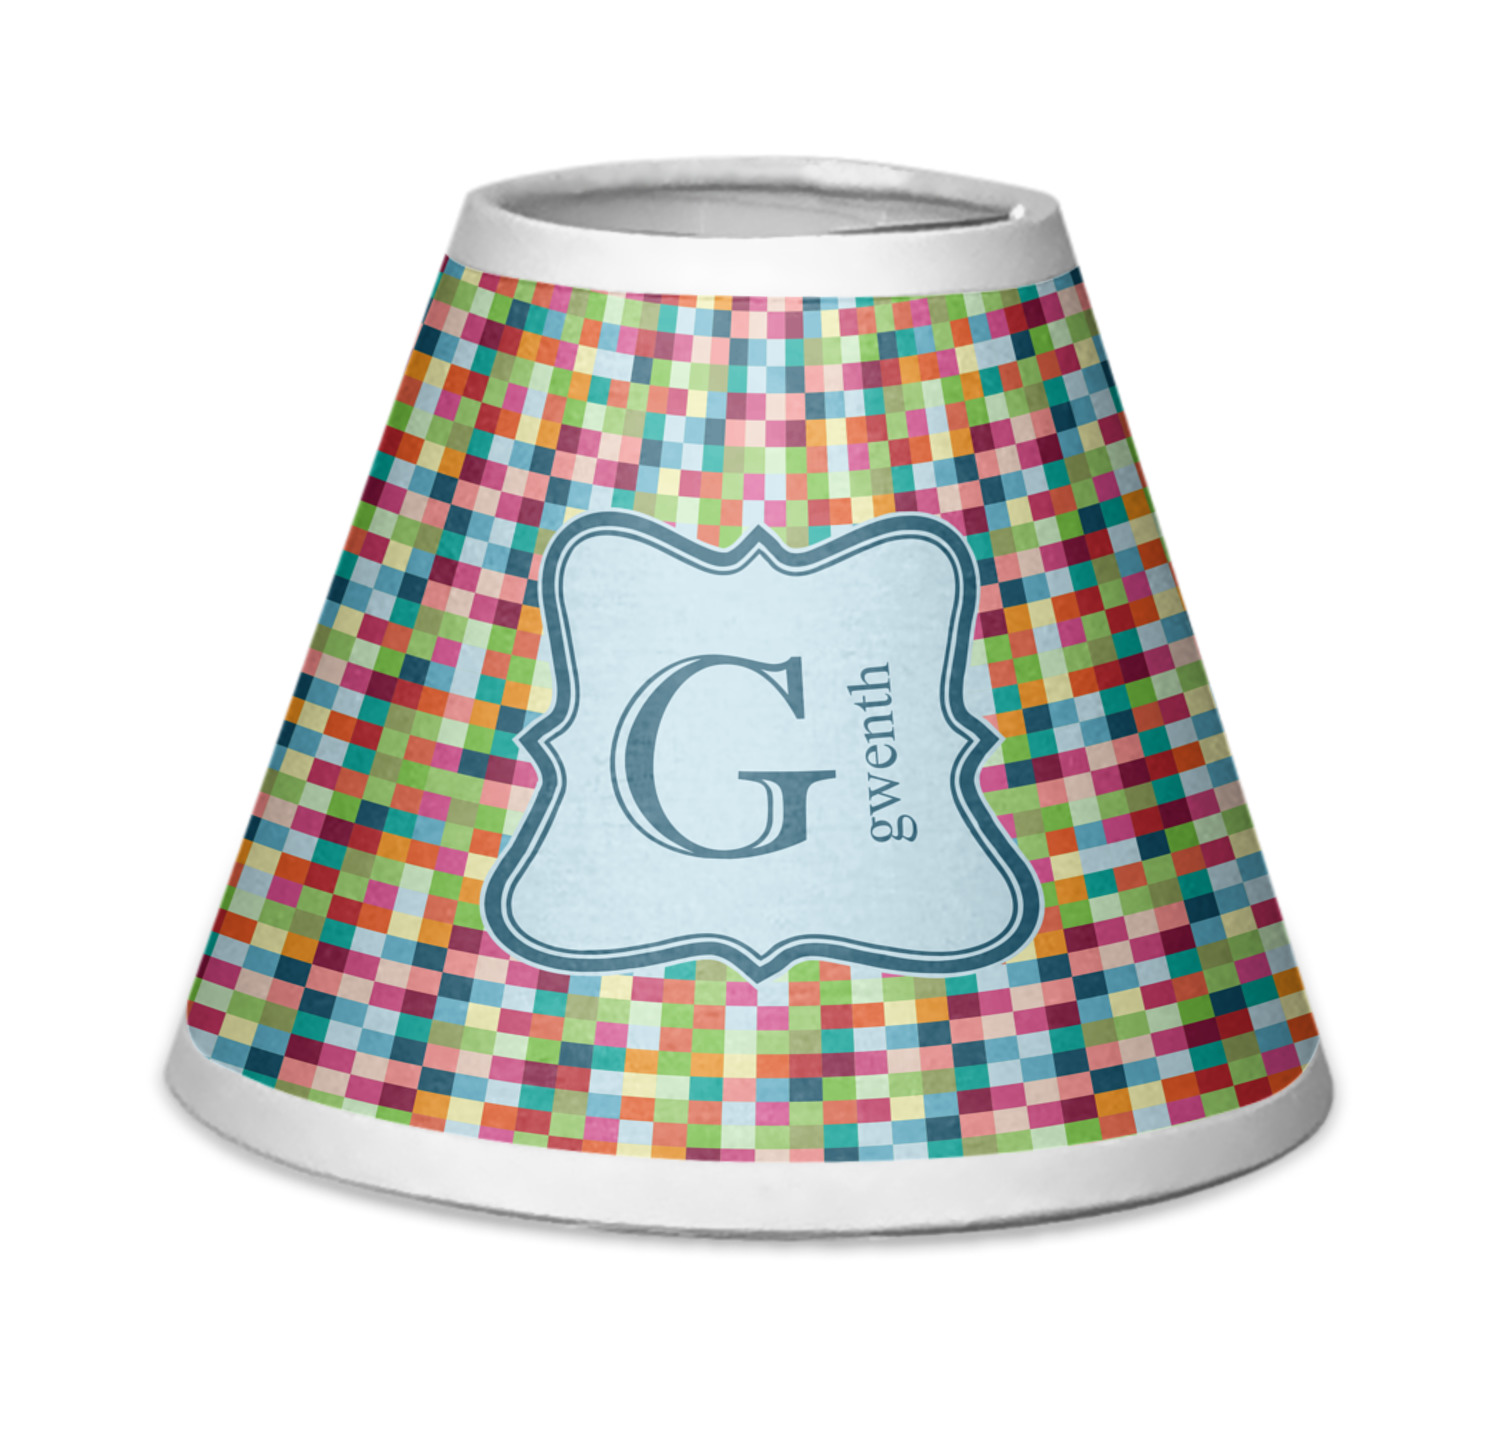 Retro Pixel Squares Chandelier Lamp Shade Personalized